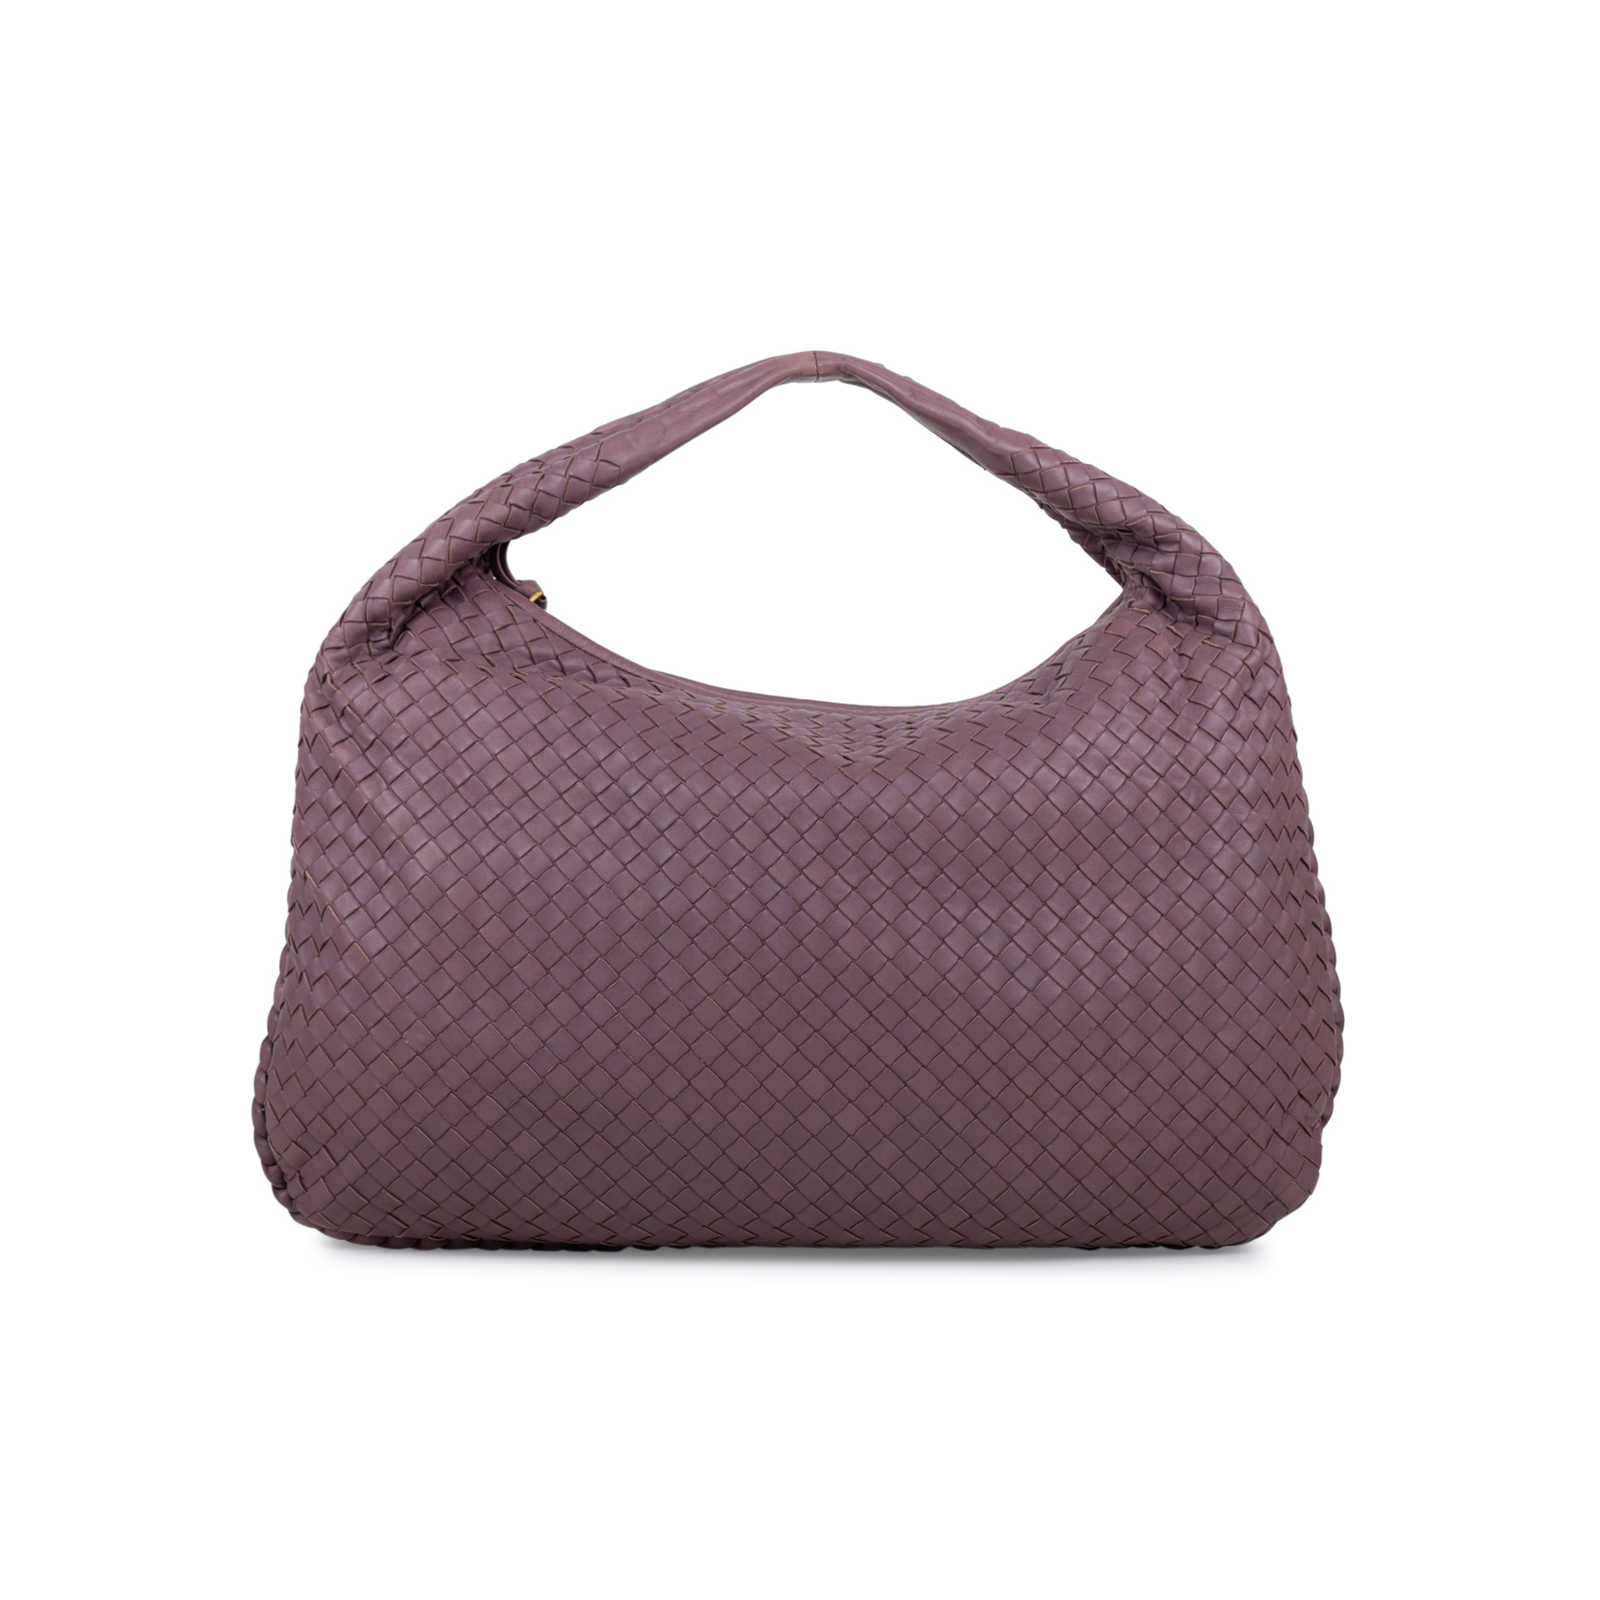 ... Authentic Pre Owned Bottega Veneta Medium Intrecciato Veneta Hobo Bag ( PSS-566-00065 ... 3a0e591e0dcee